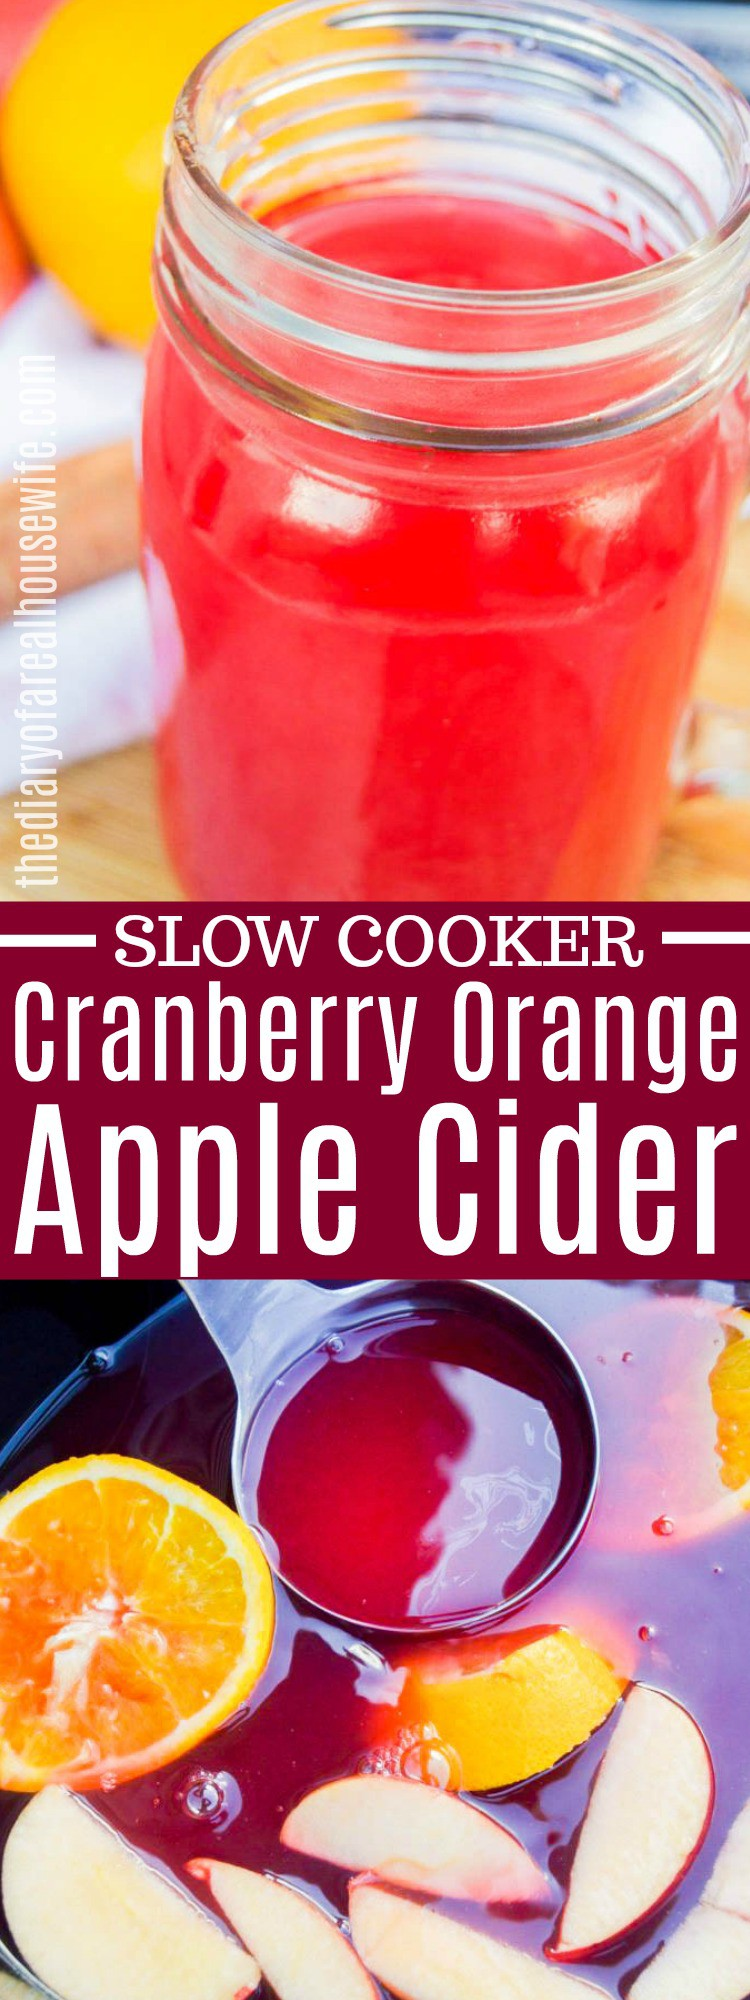 Slow Cooker Cranberry Orange Apple Cider